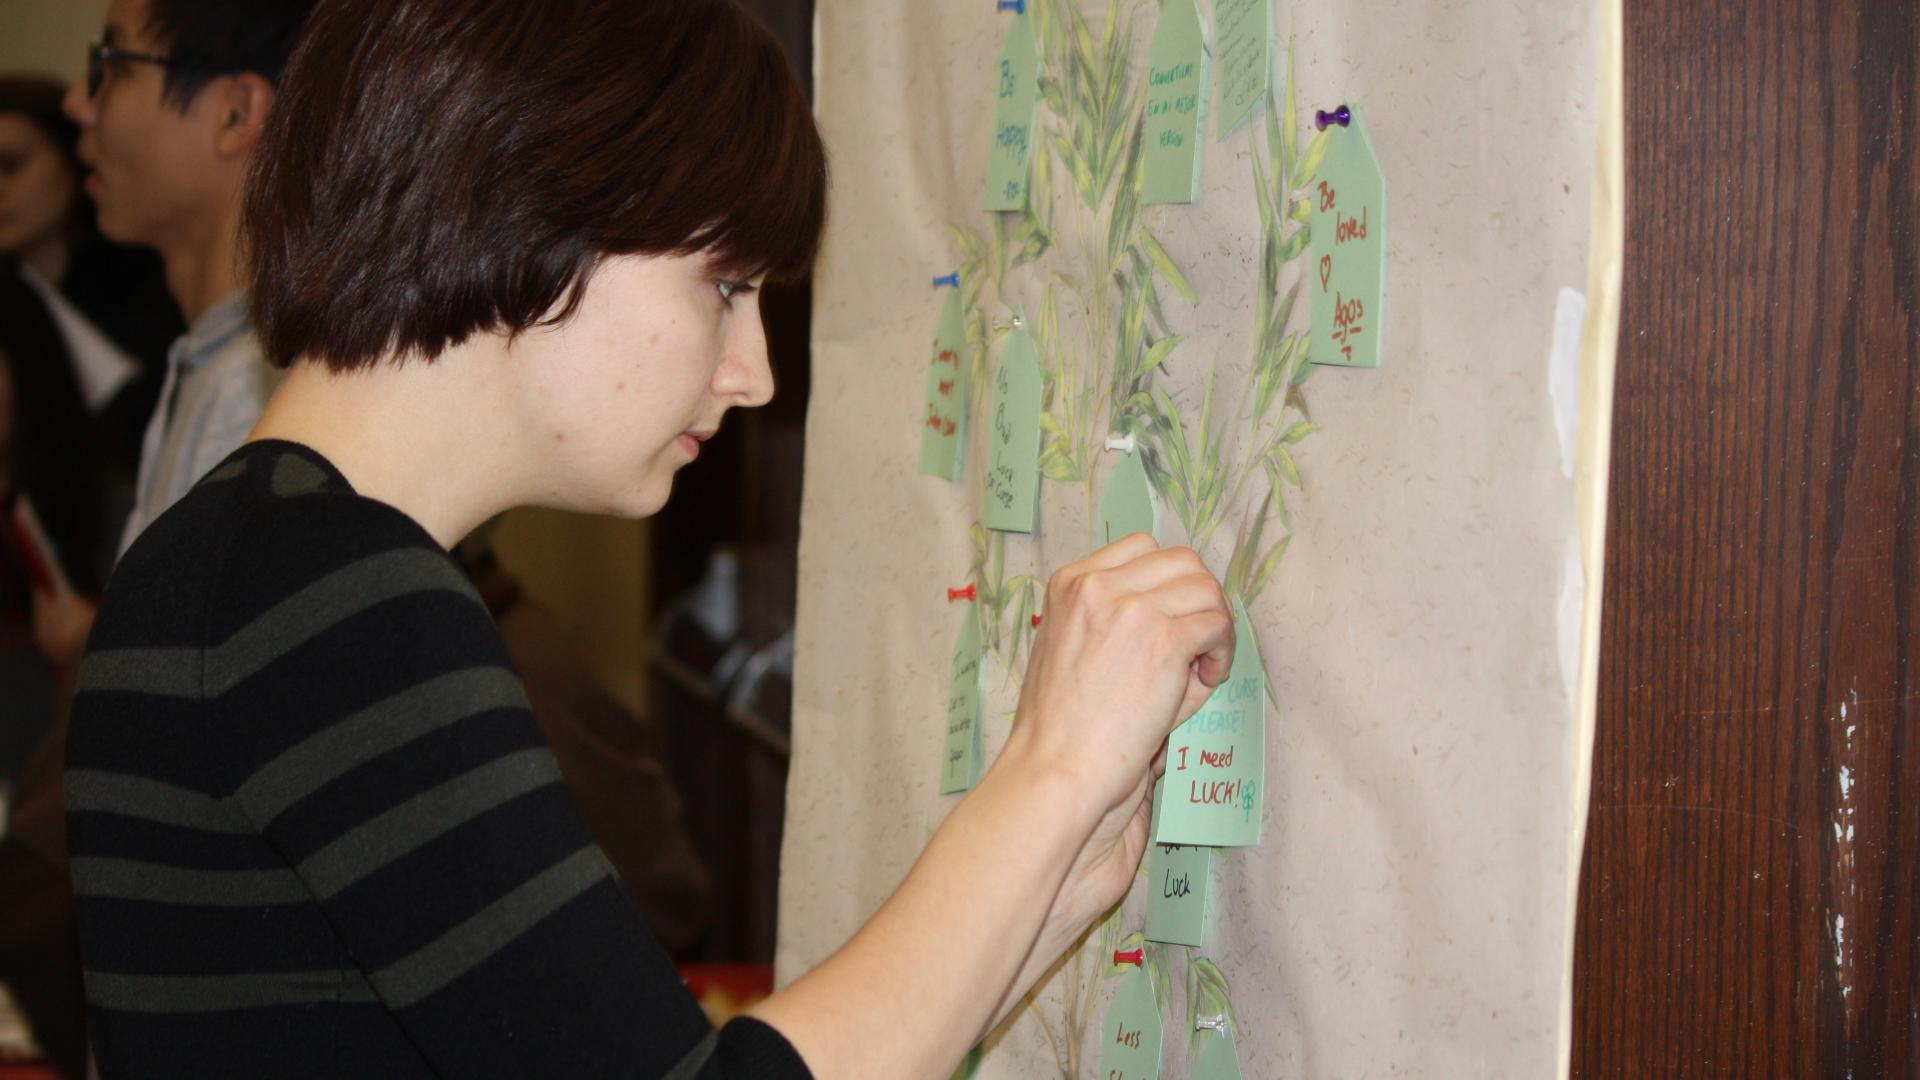 Student pins a note on a feedback board at a student event